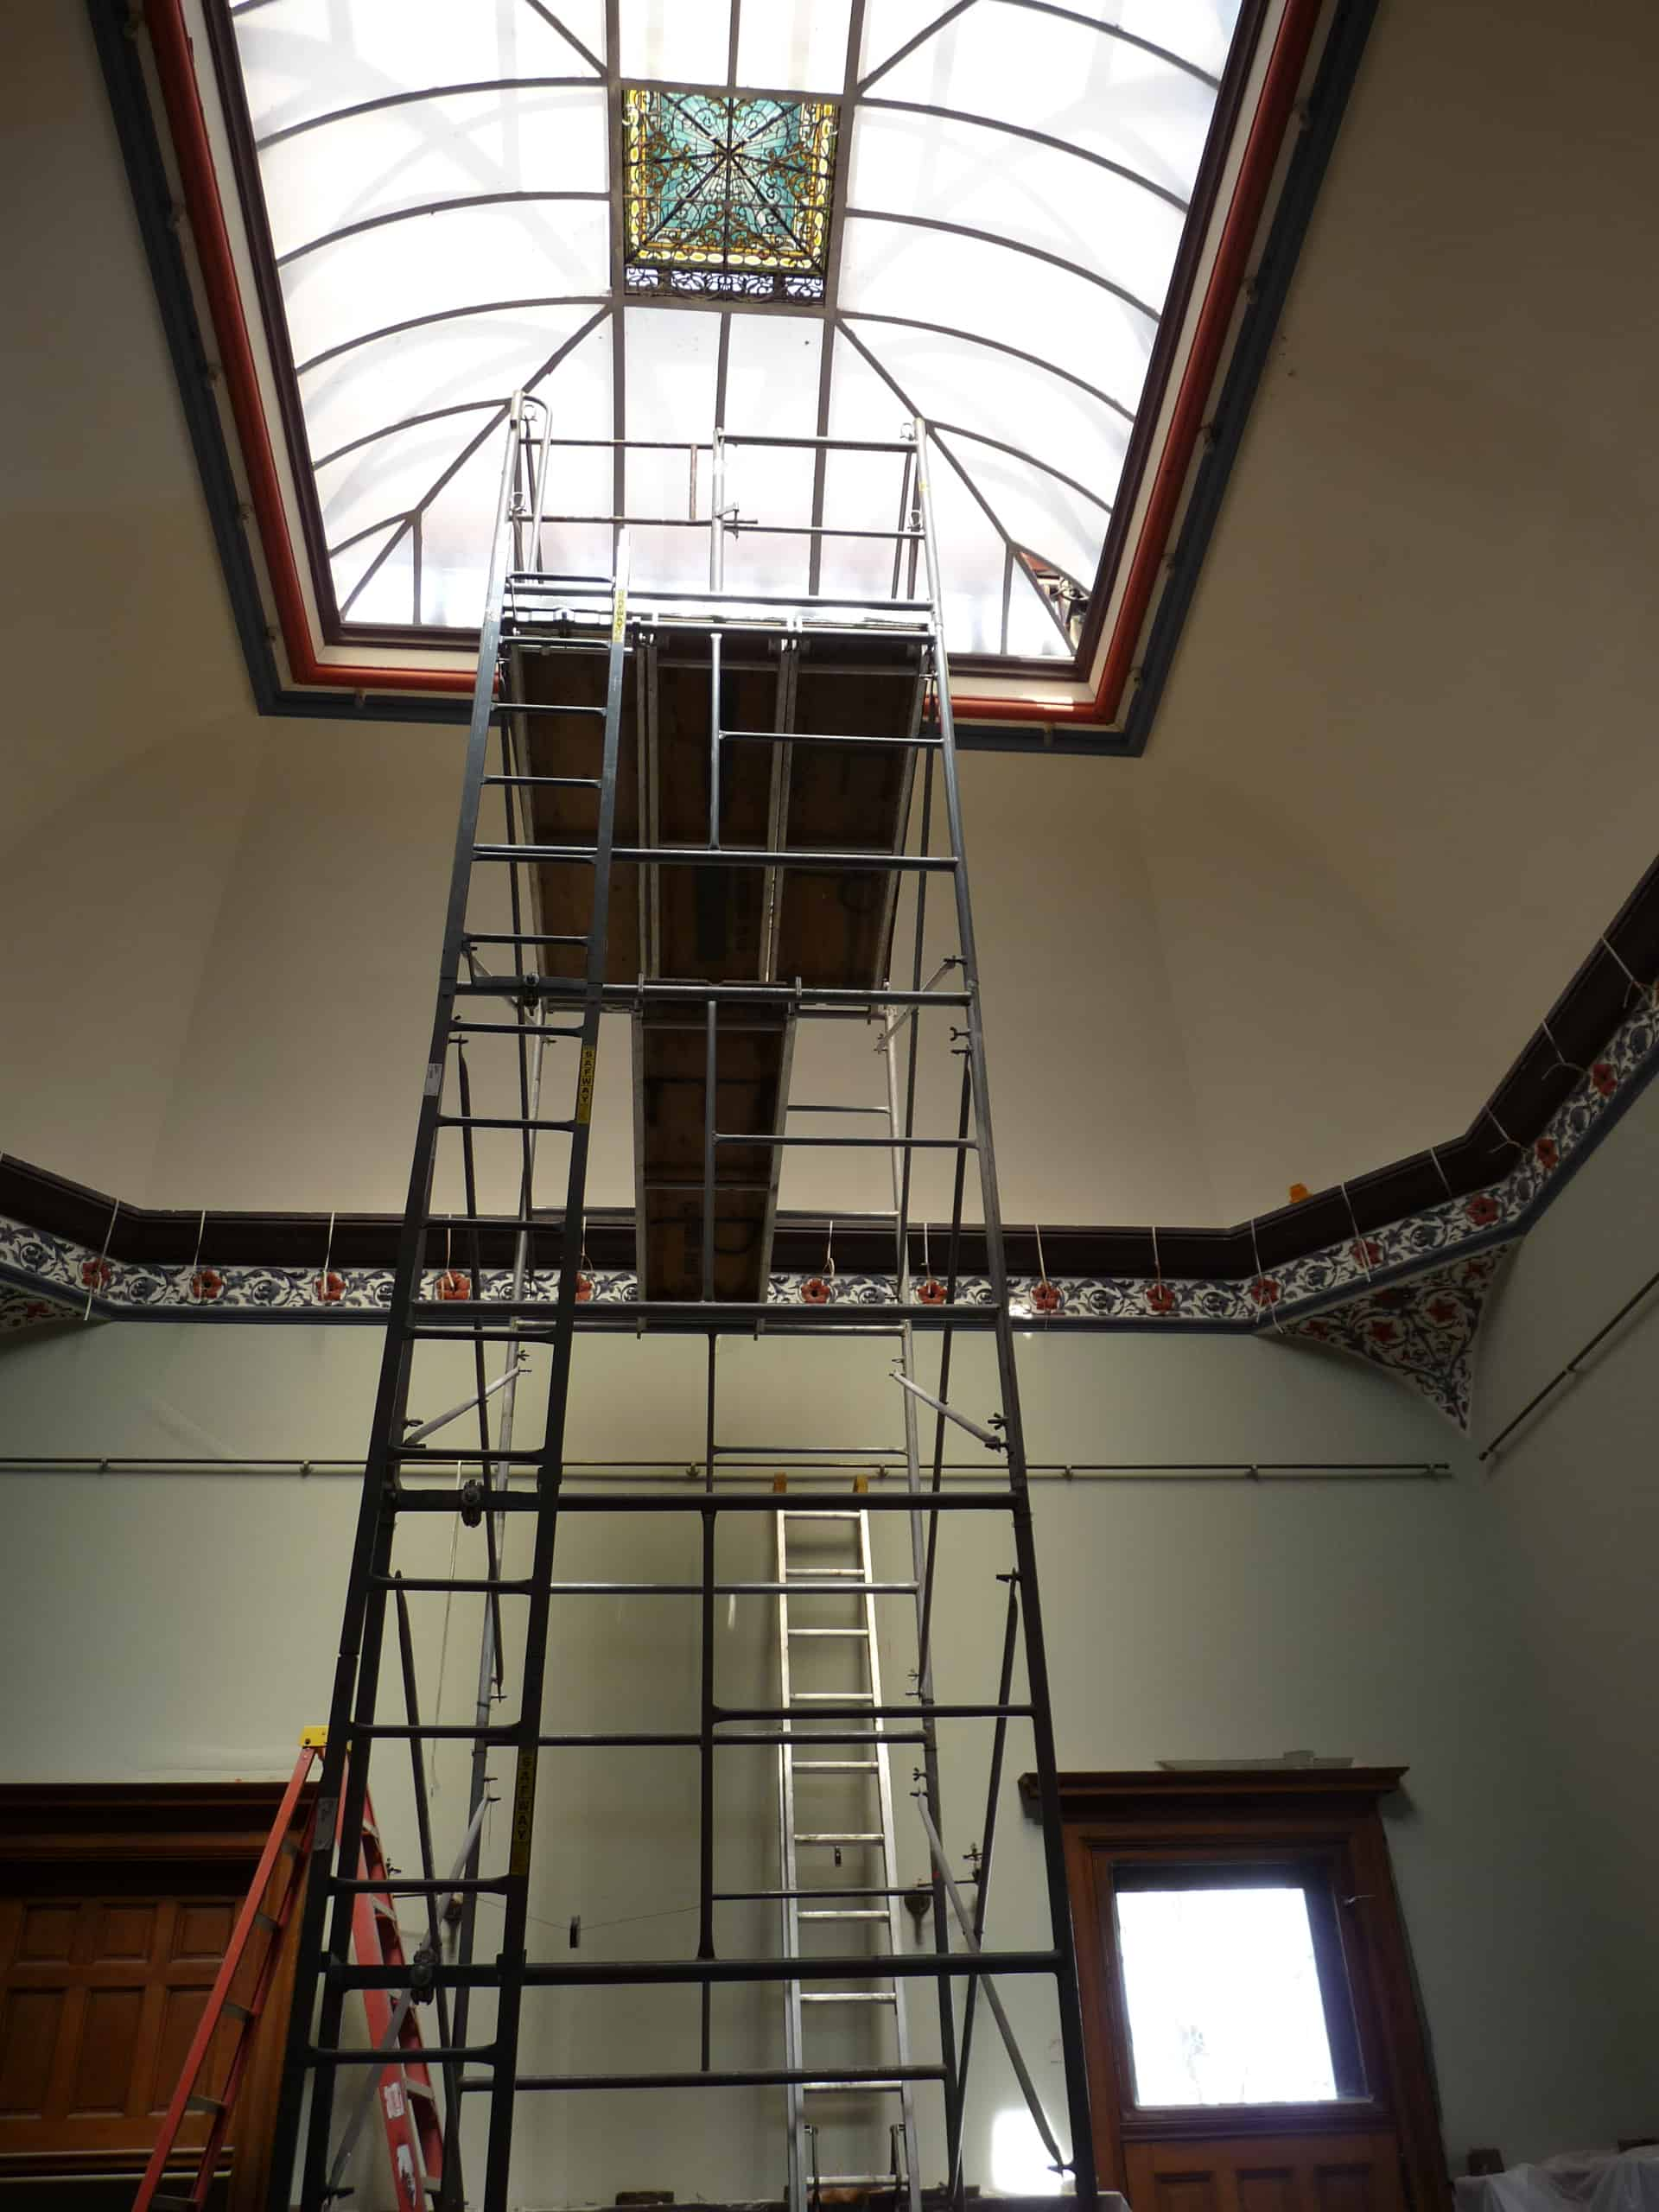 layher scaffolding most interior of building staley makes melbourne winning major refurbishment the fmb alan roof project hall award